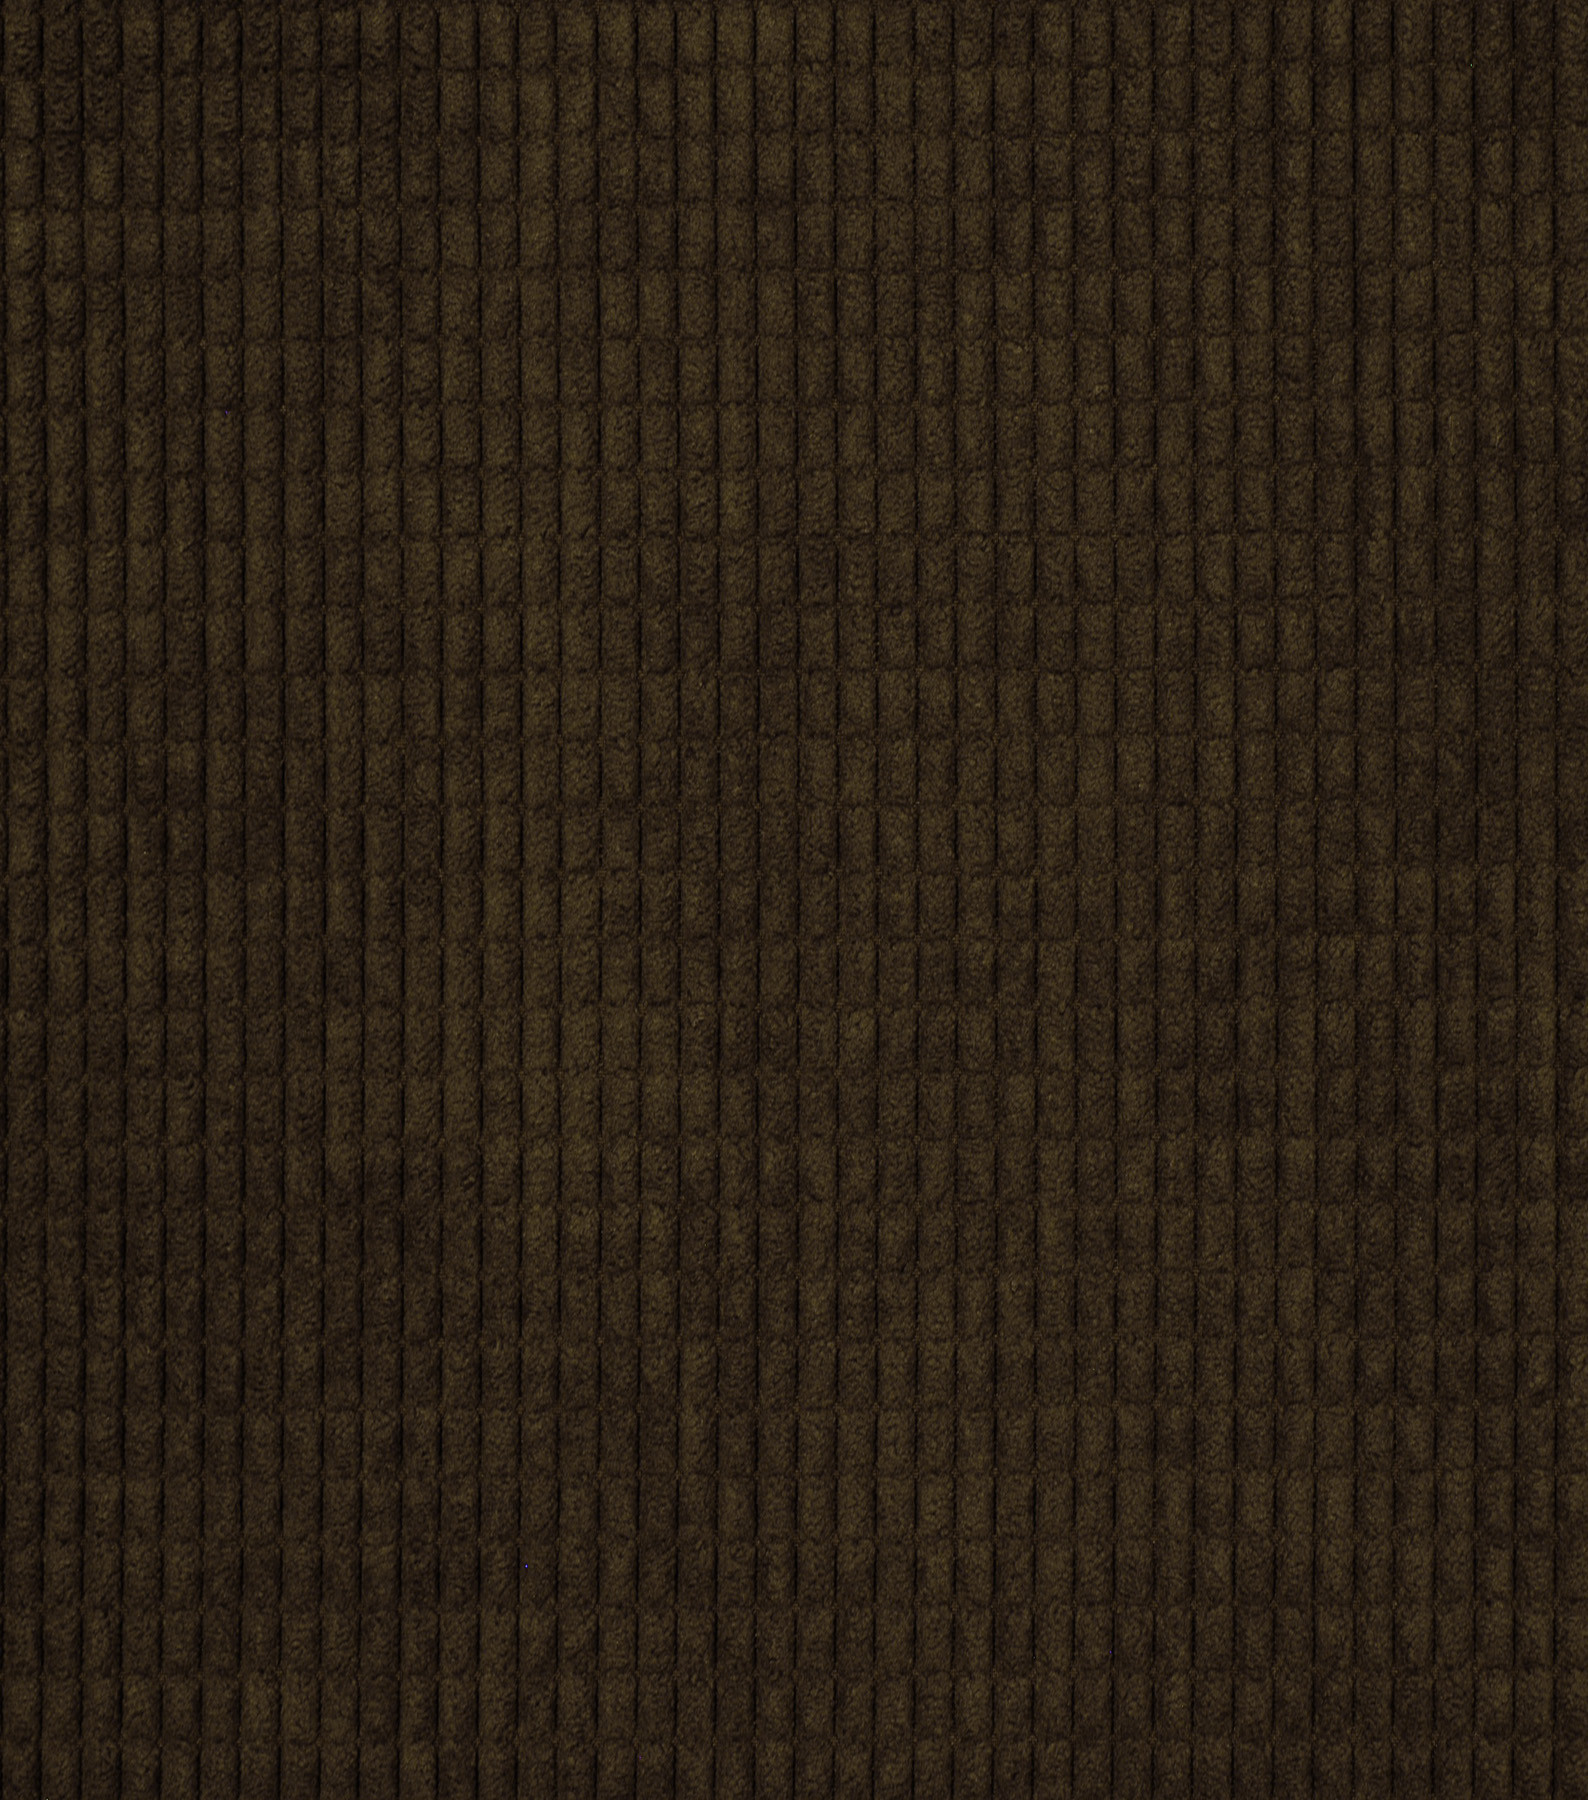 Home Decor 8\u0022x8\u0022 Fabric Swatch-Signature Series Eastfield Chocolate